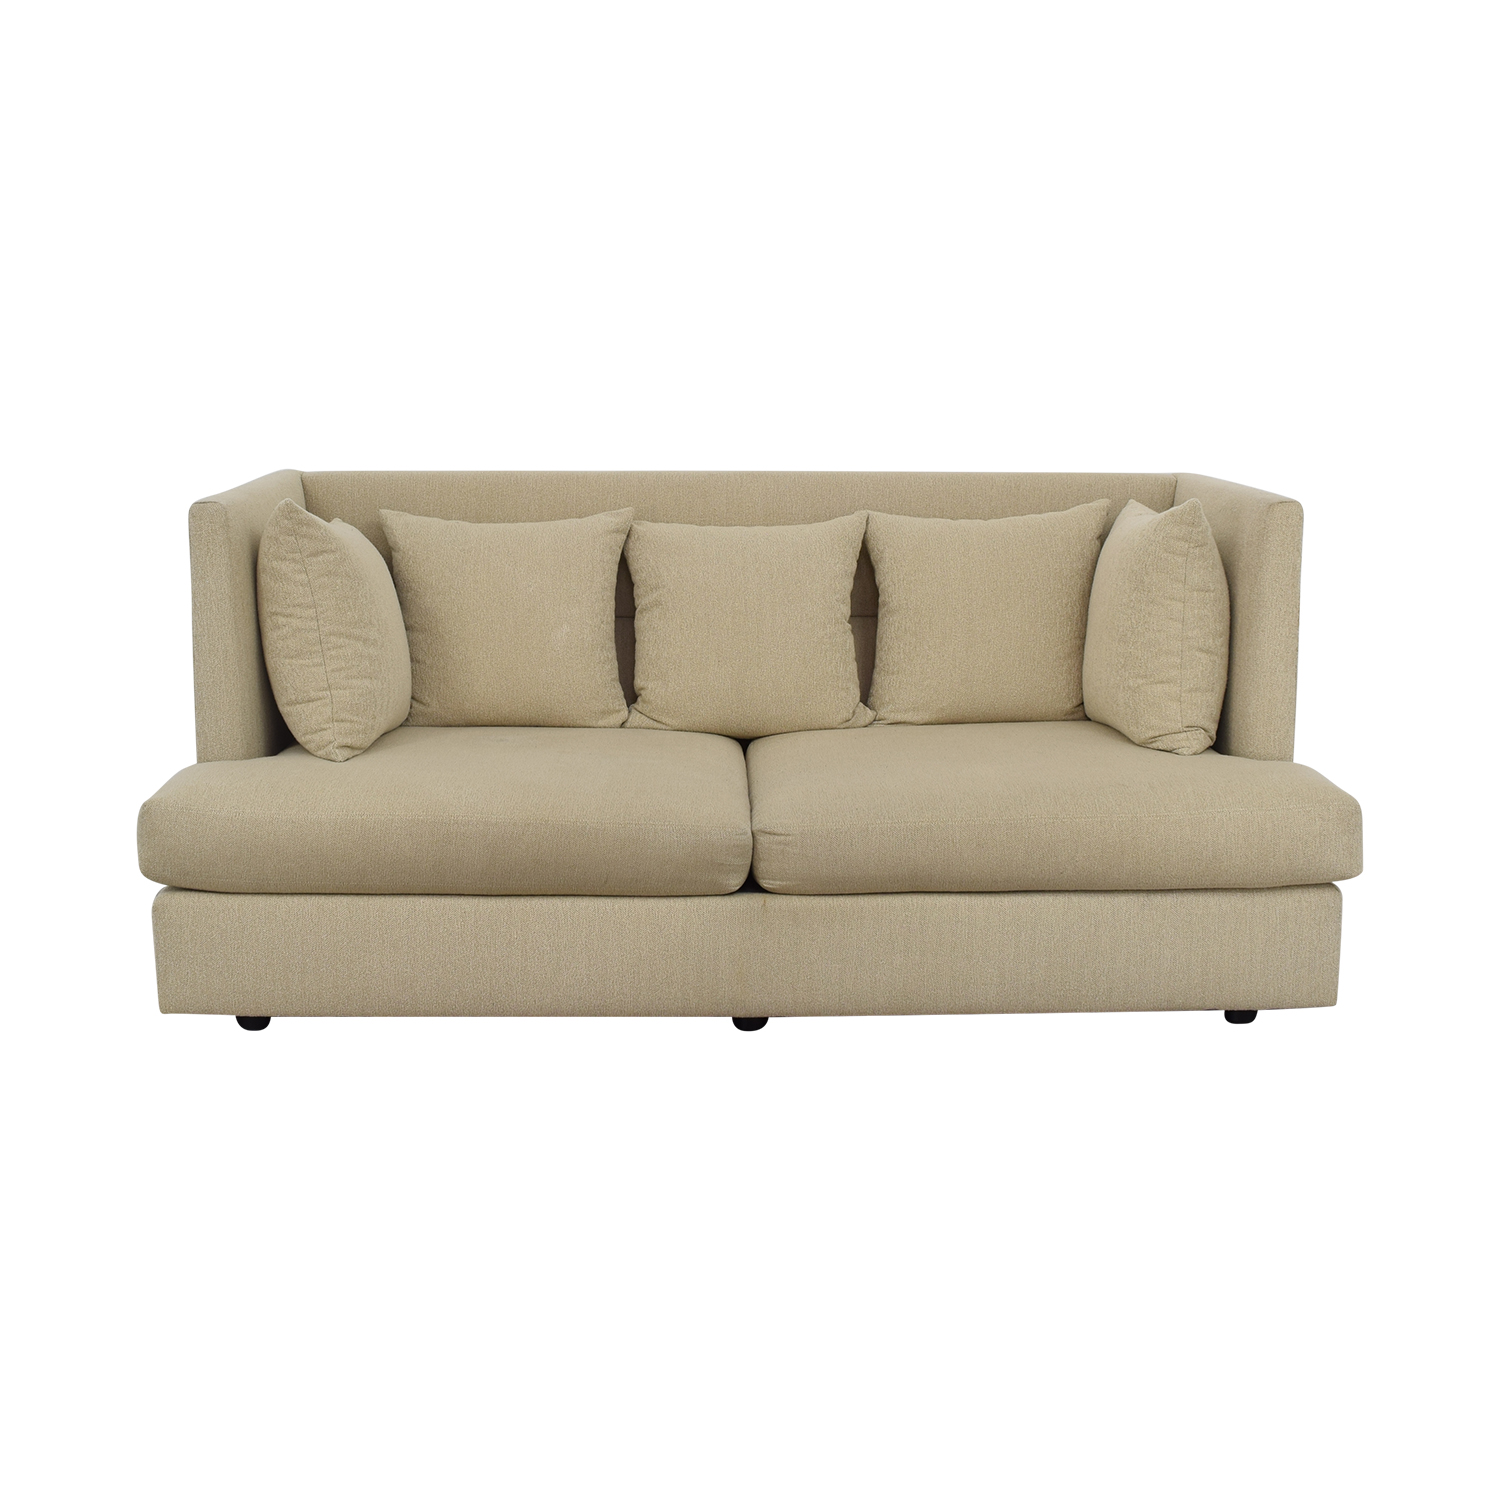 Crate & Barrel Crate & Barrel Milo Baughman Sofa Sofas